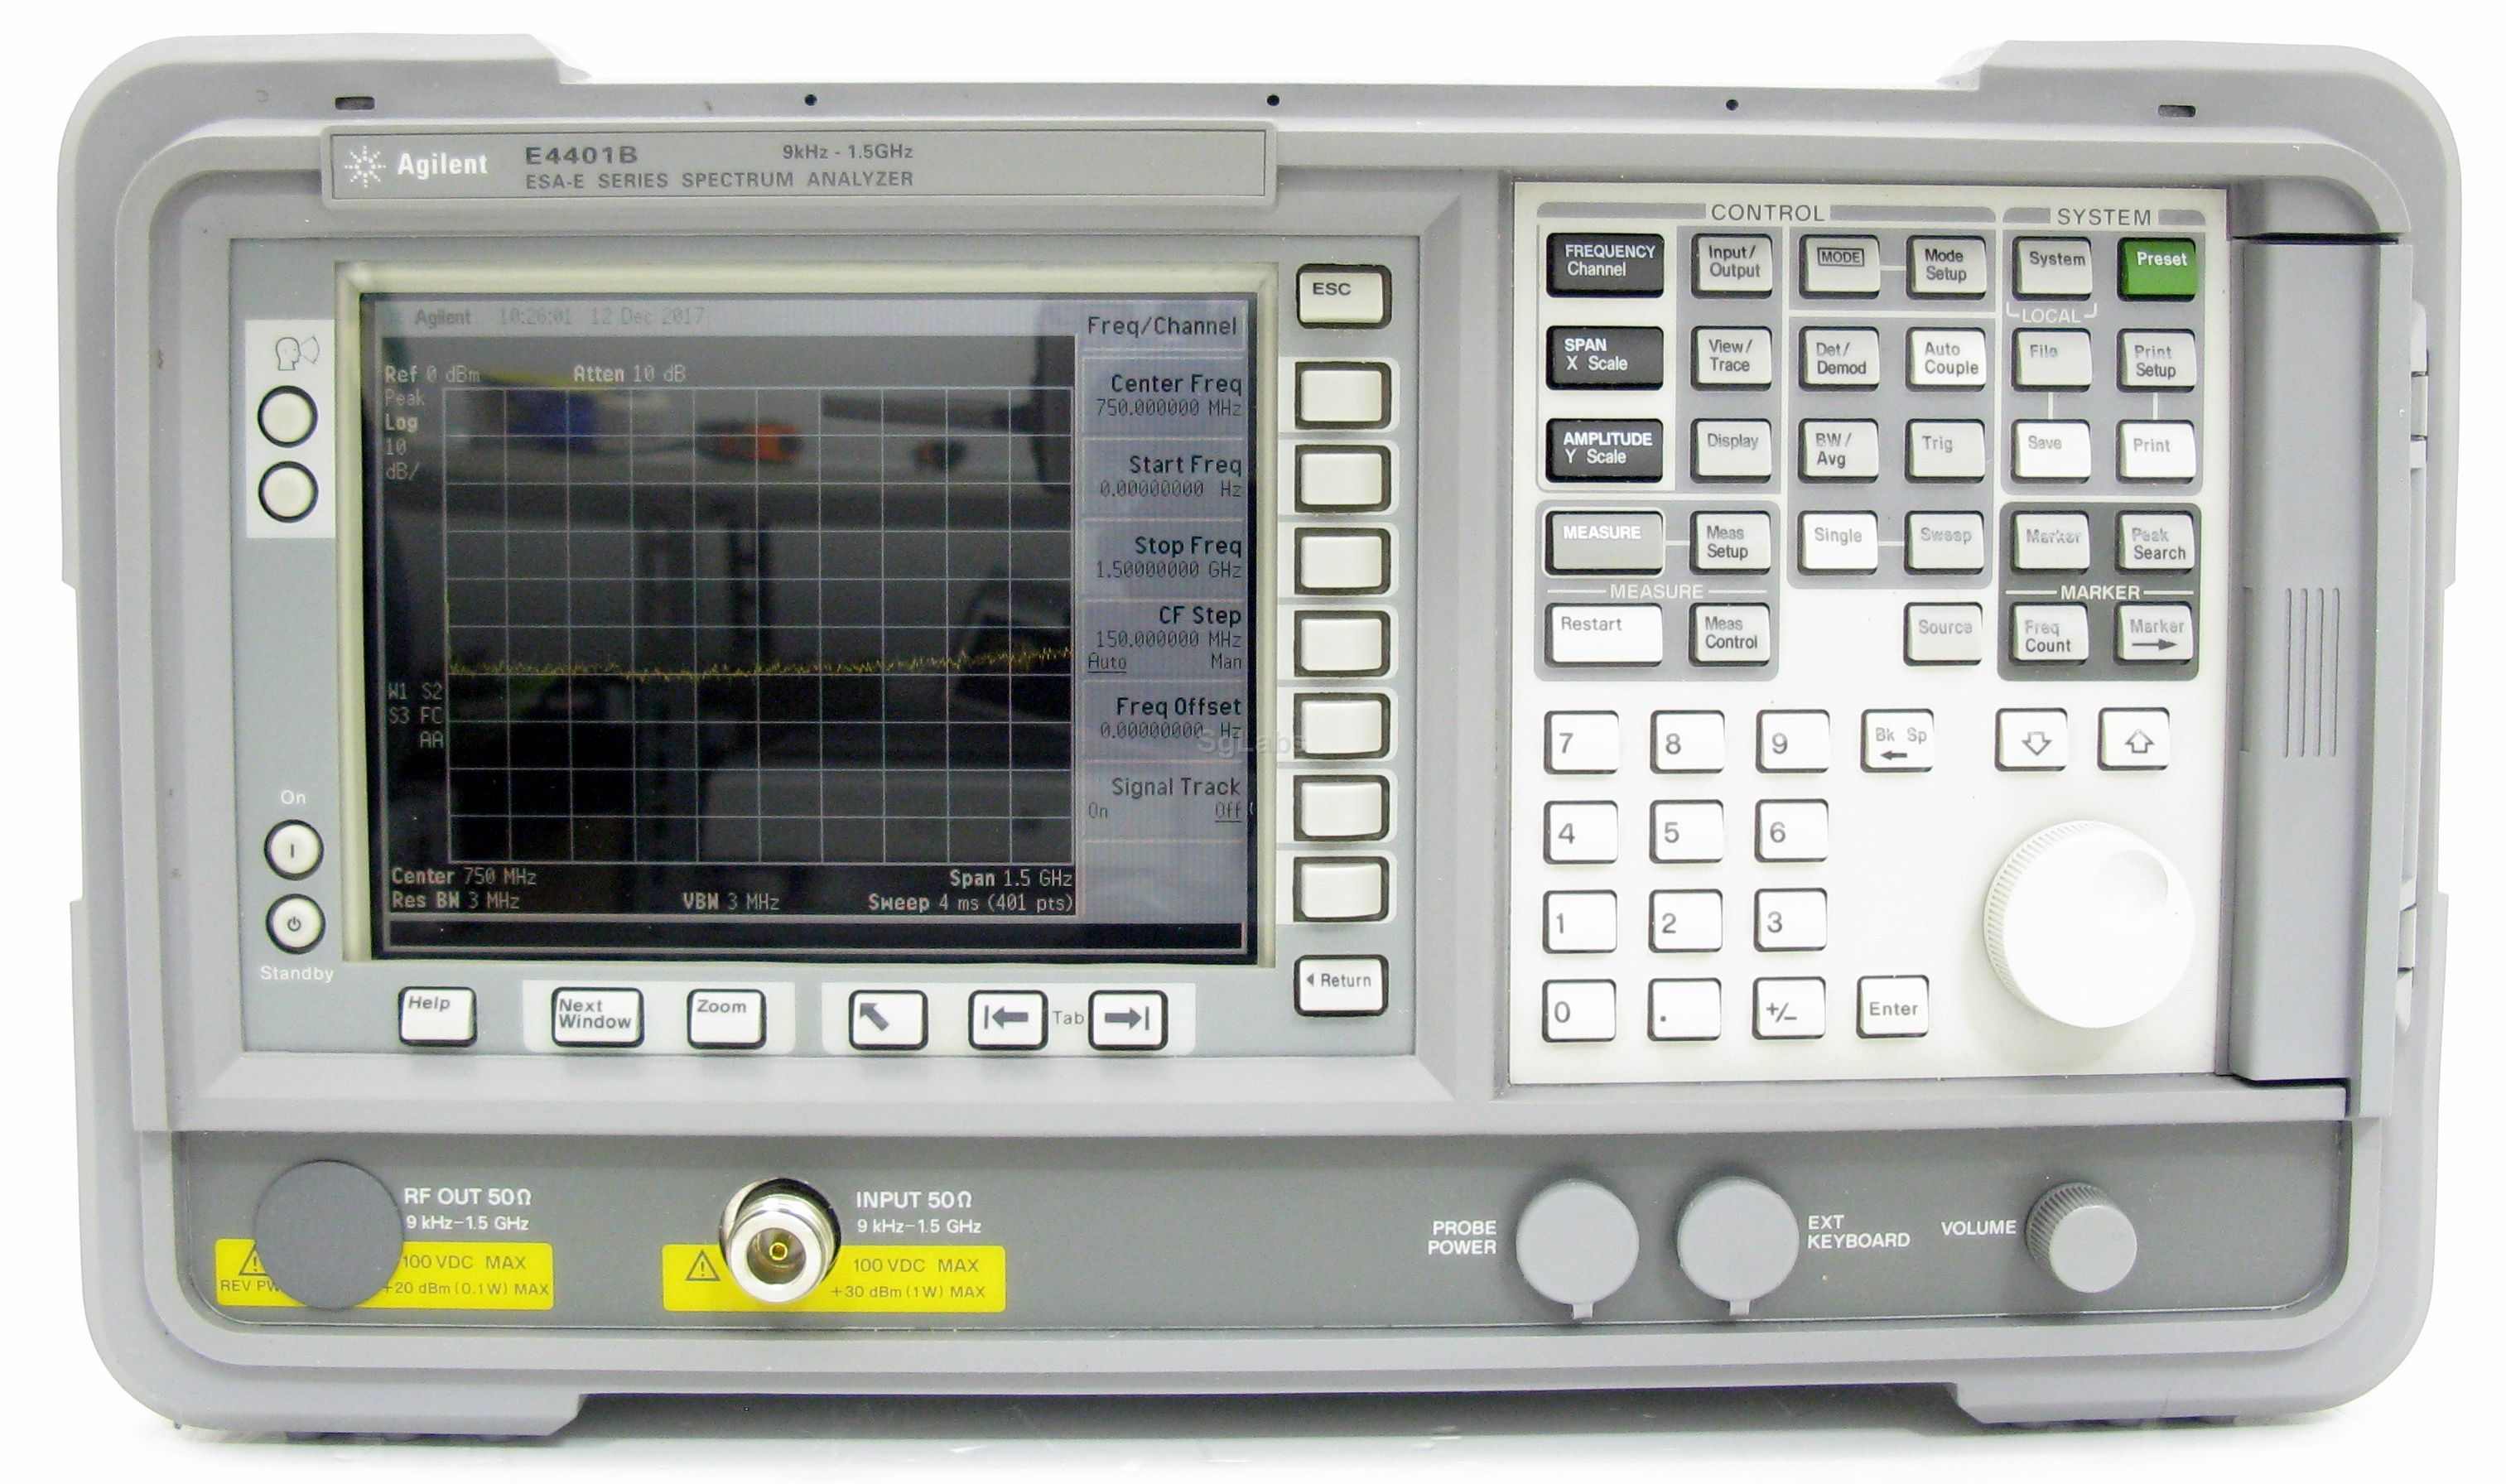 Keysight E4401B ESA-E Series Spectrum Analyzer